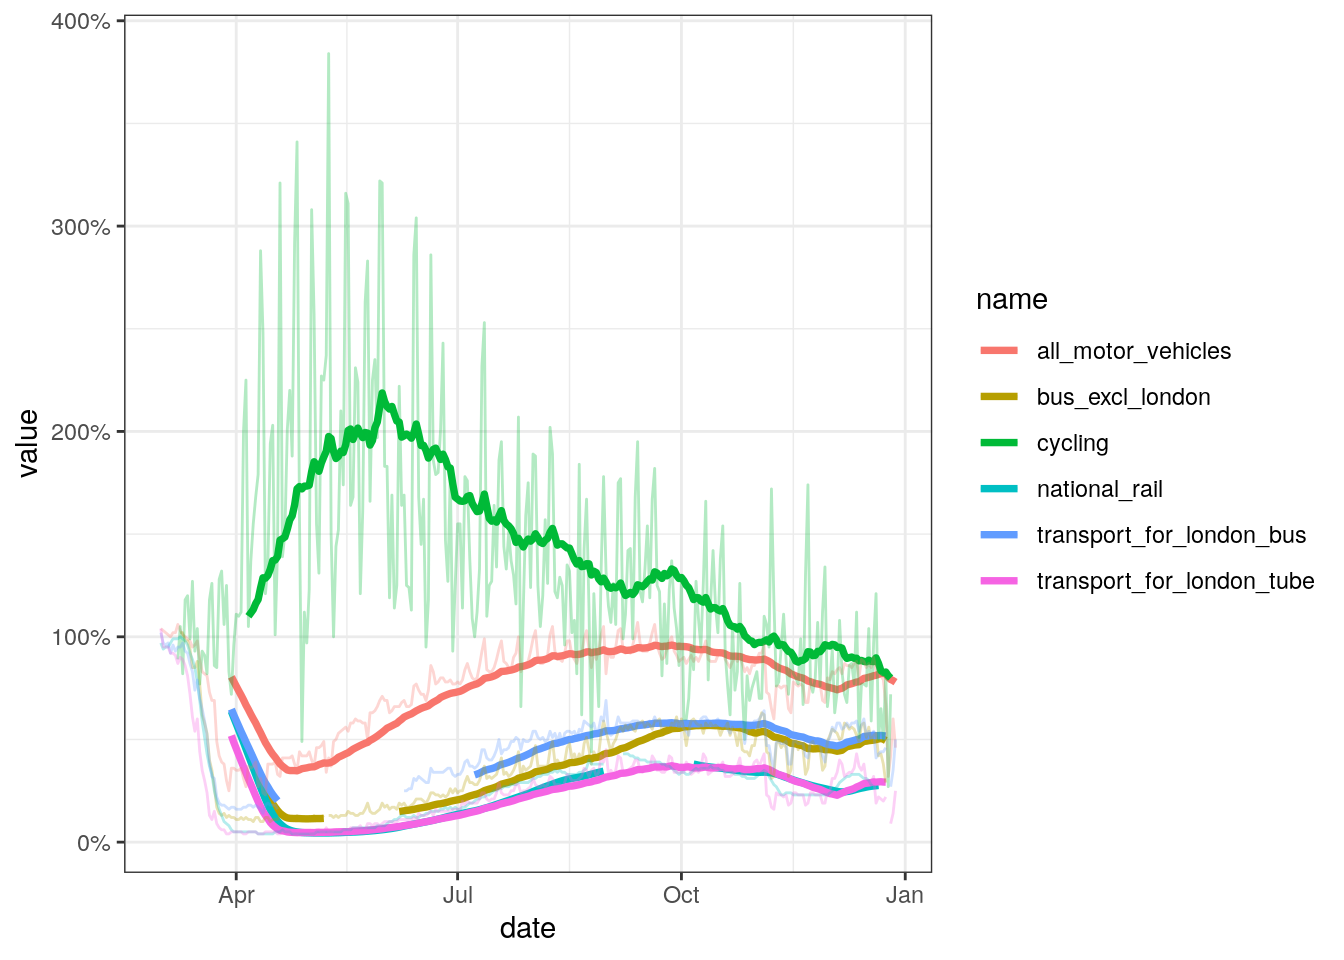 Travel by different modes of transport relative to pre-pandemic (early March) levels. Dark lines represent 30 day rolling averages. Source: [DfT](https://www.gov.uk/government/statistics/transport-use-during-the-coronavirus-covid-19-pandemic)